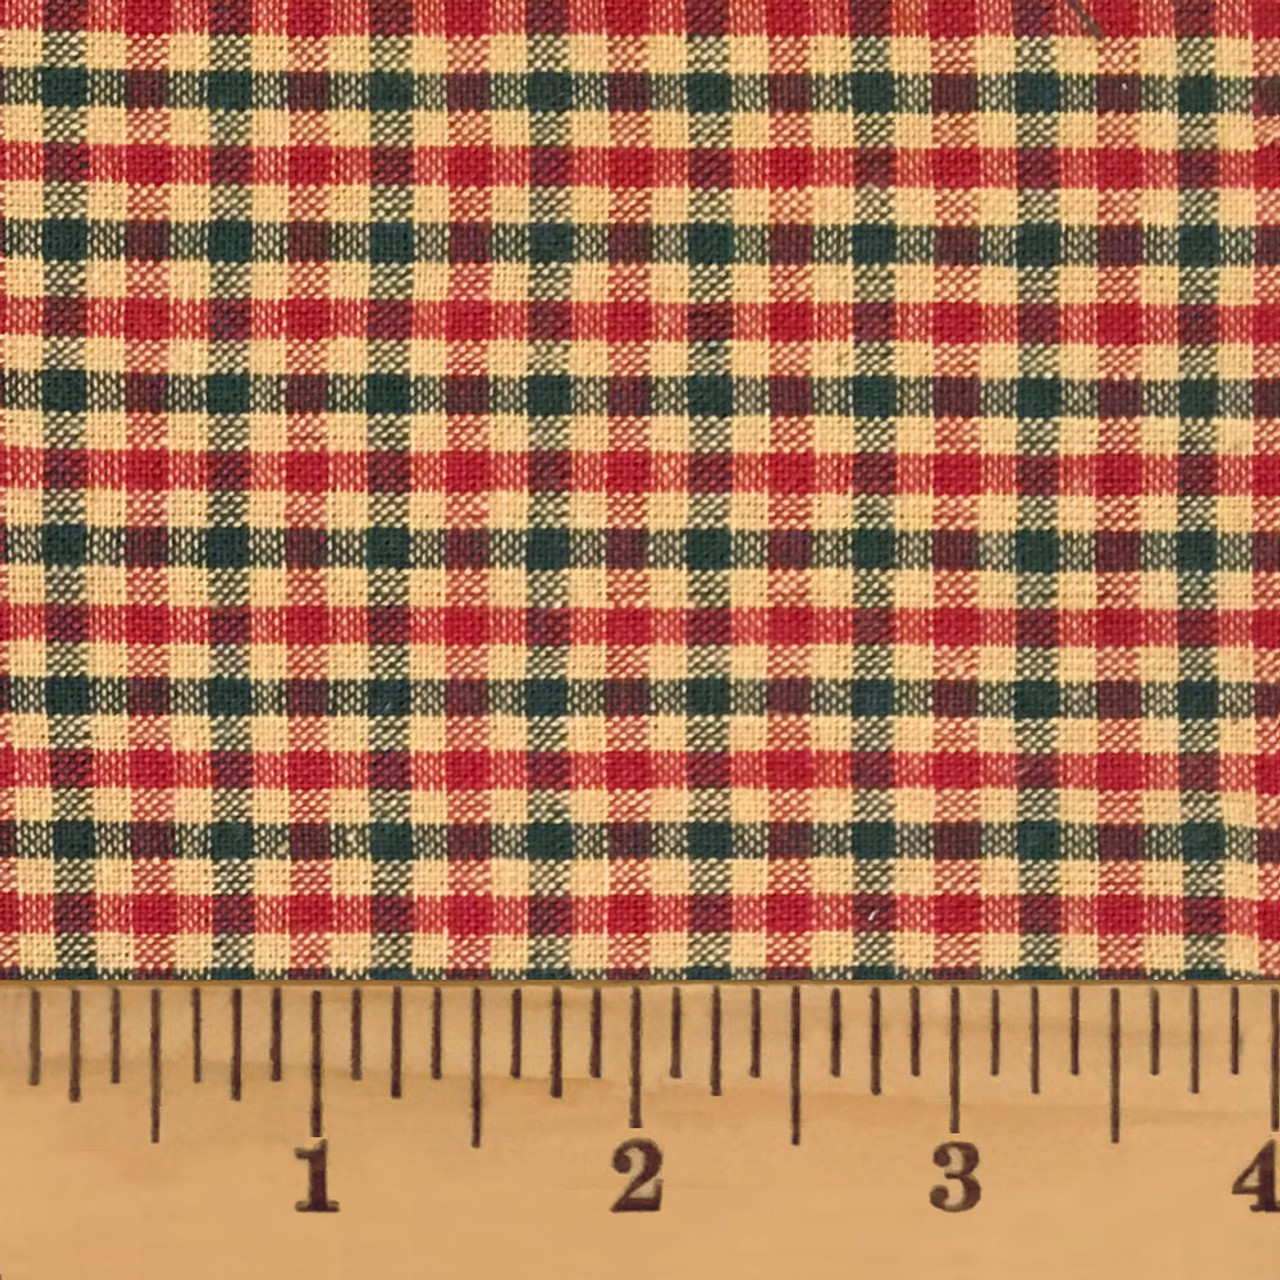 Cranberry Christmas 3 Plaid Homespun Cotton Fabric